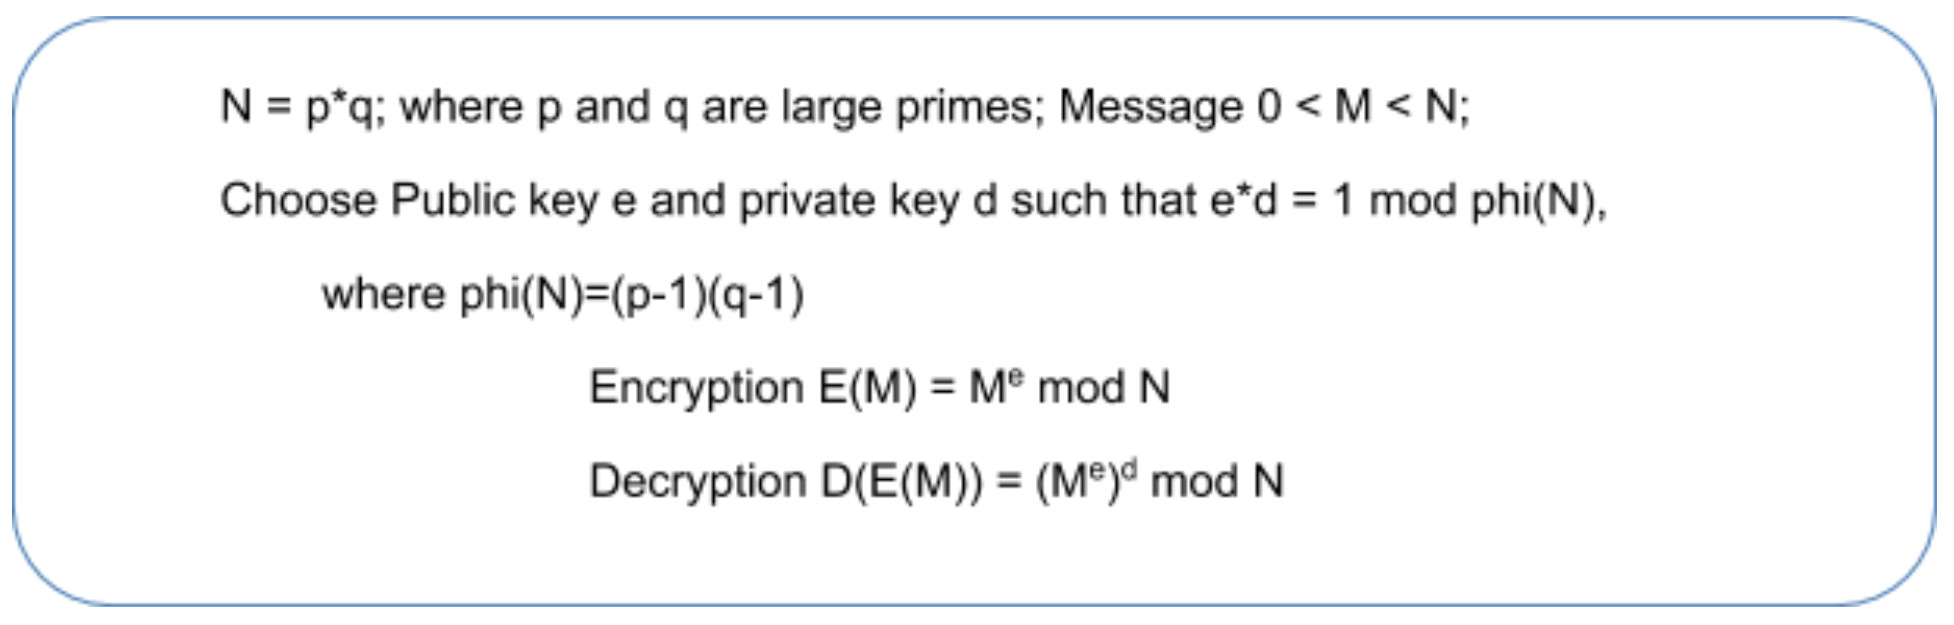 Figure 4: Typical RSA Encryption and Decryption